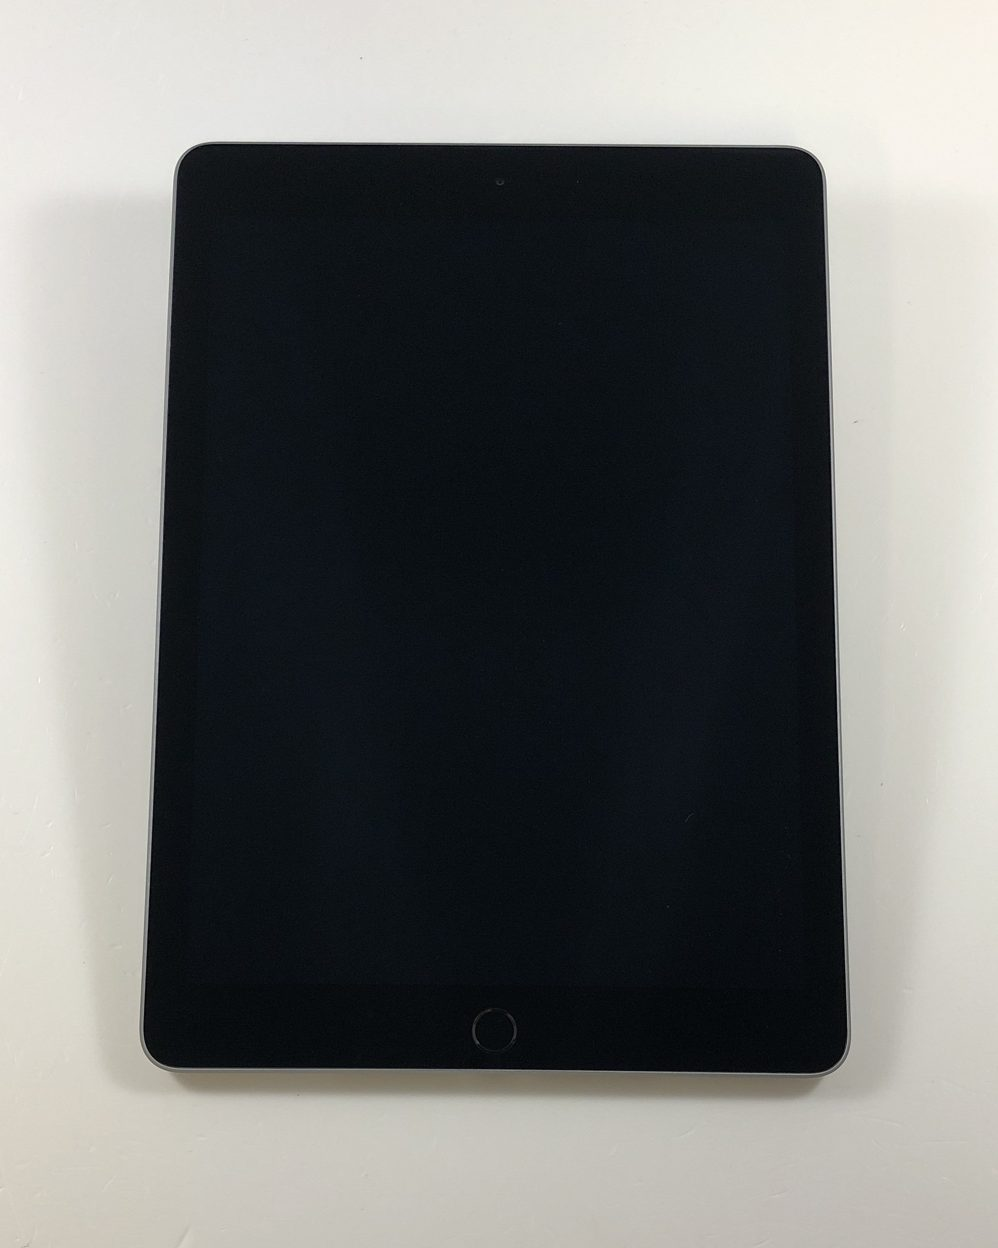 iPad 5 Wi-Fi 128GB, 128GB, Space Gray, Bild 1